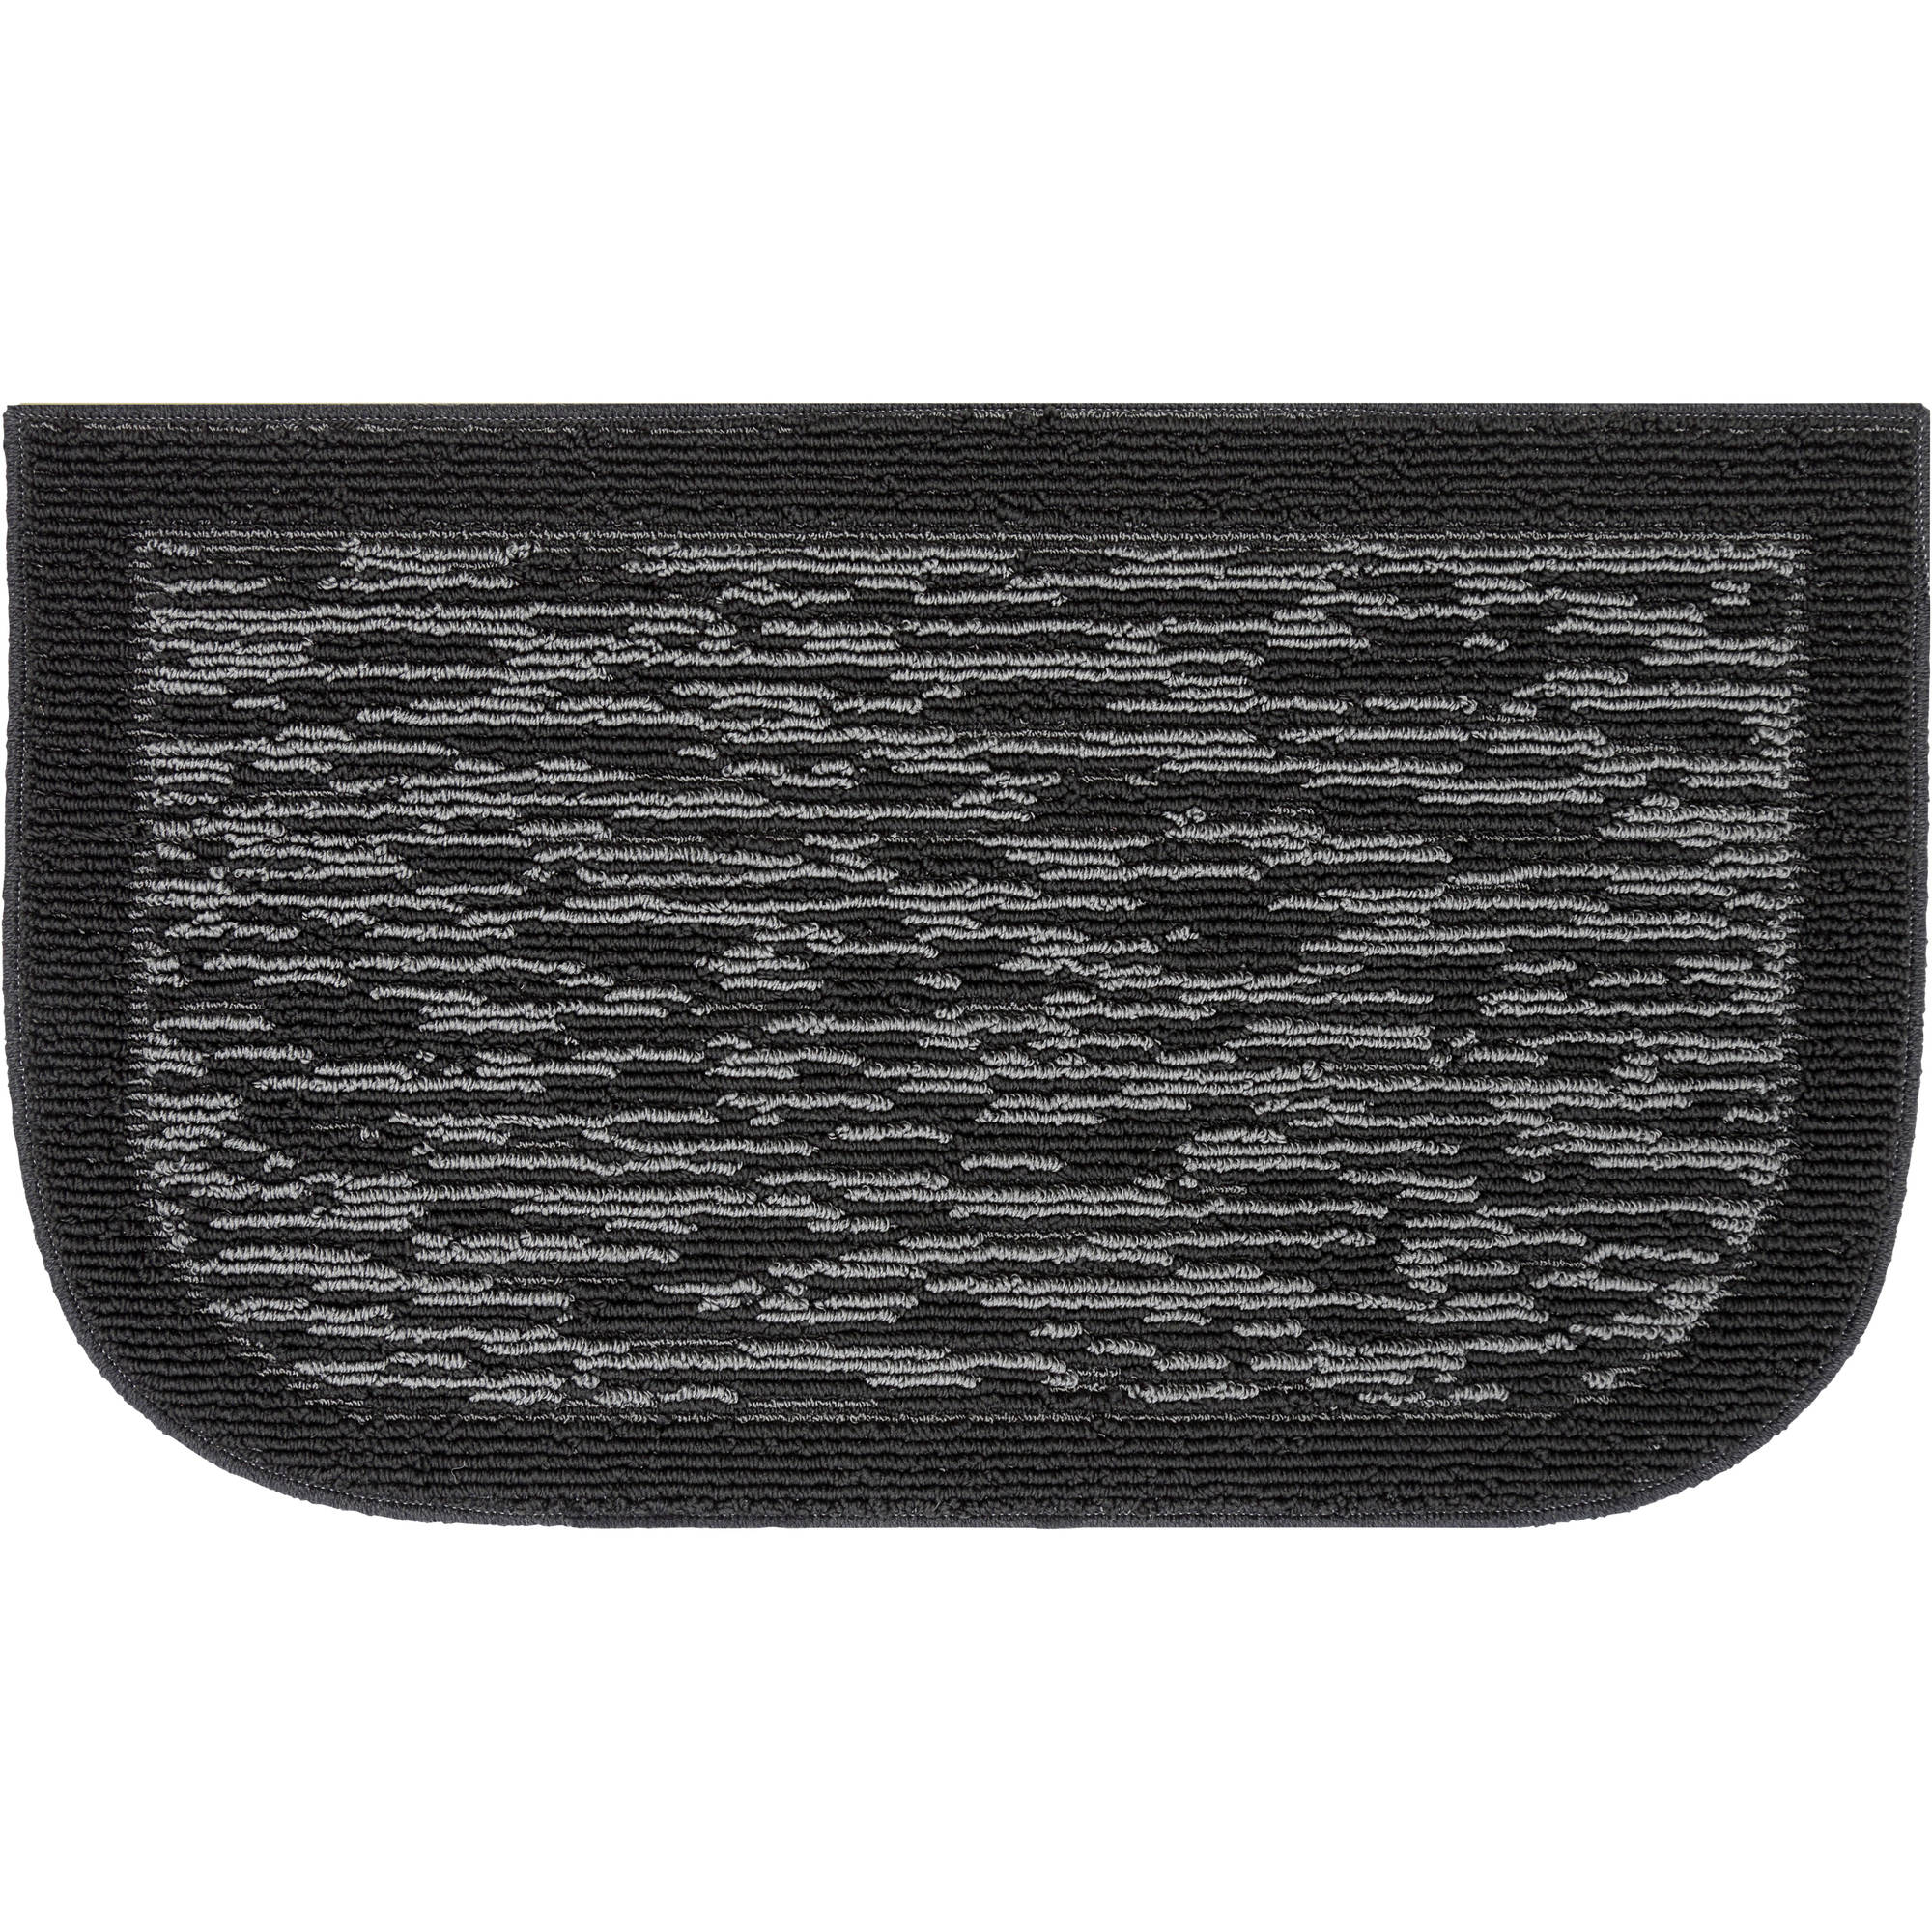 Mohawk Home Canopy Slice Kitchen Rug, Moonless Night, ...